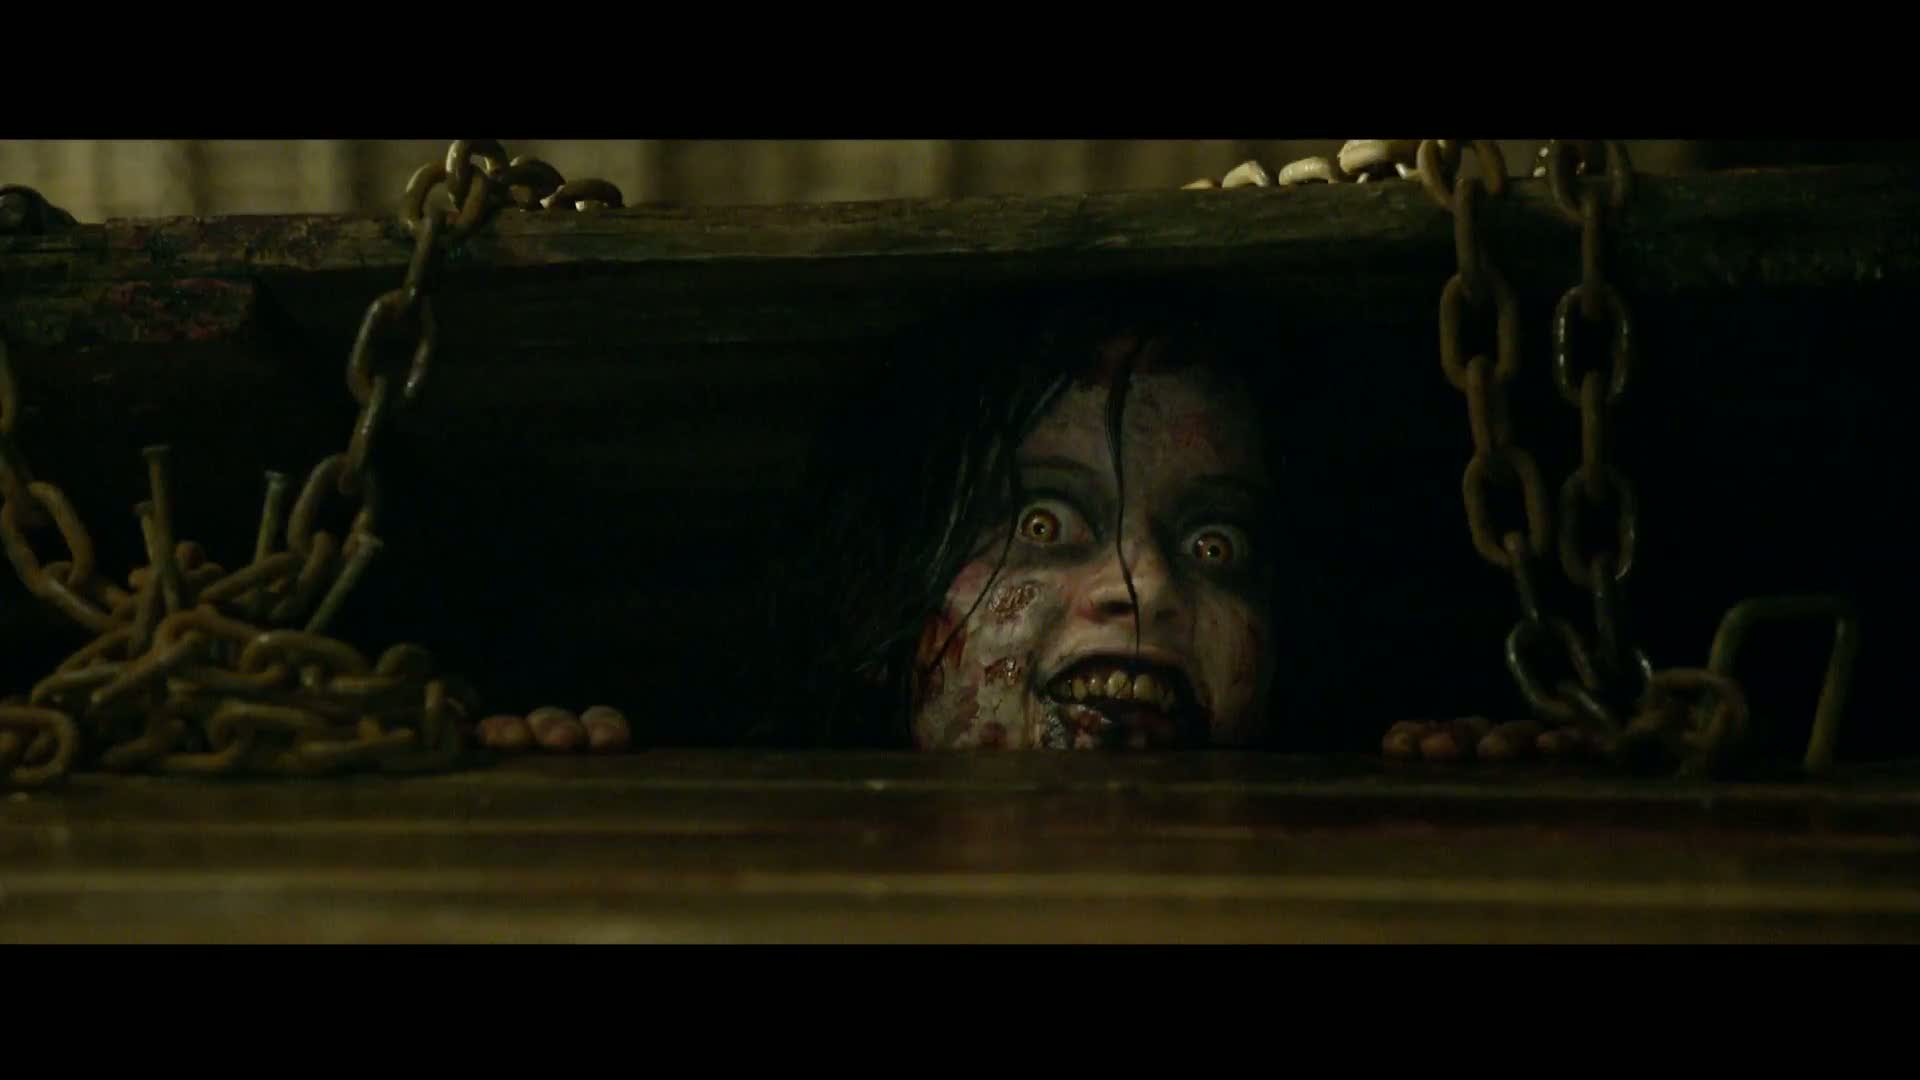 Evil Dead 2013 Images HD Wallpaper And Background Photos